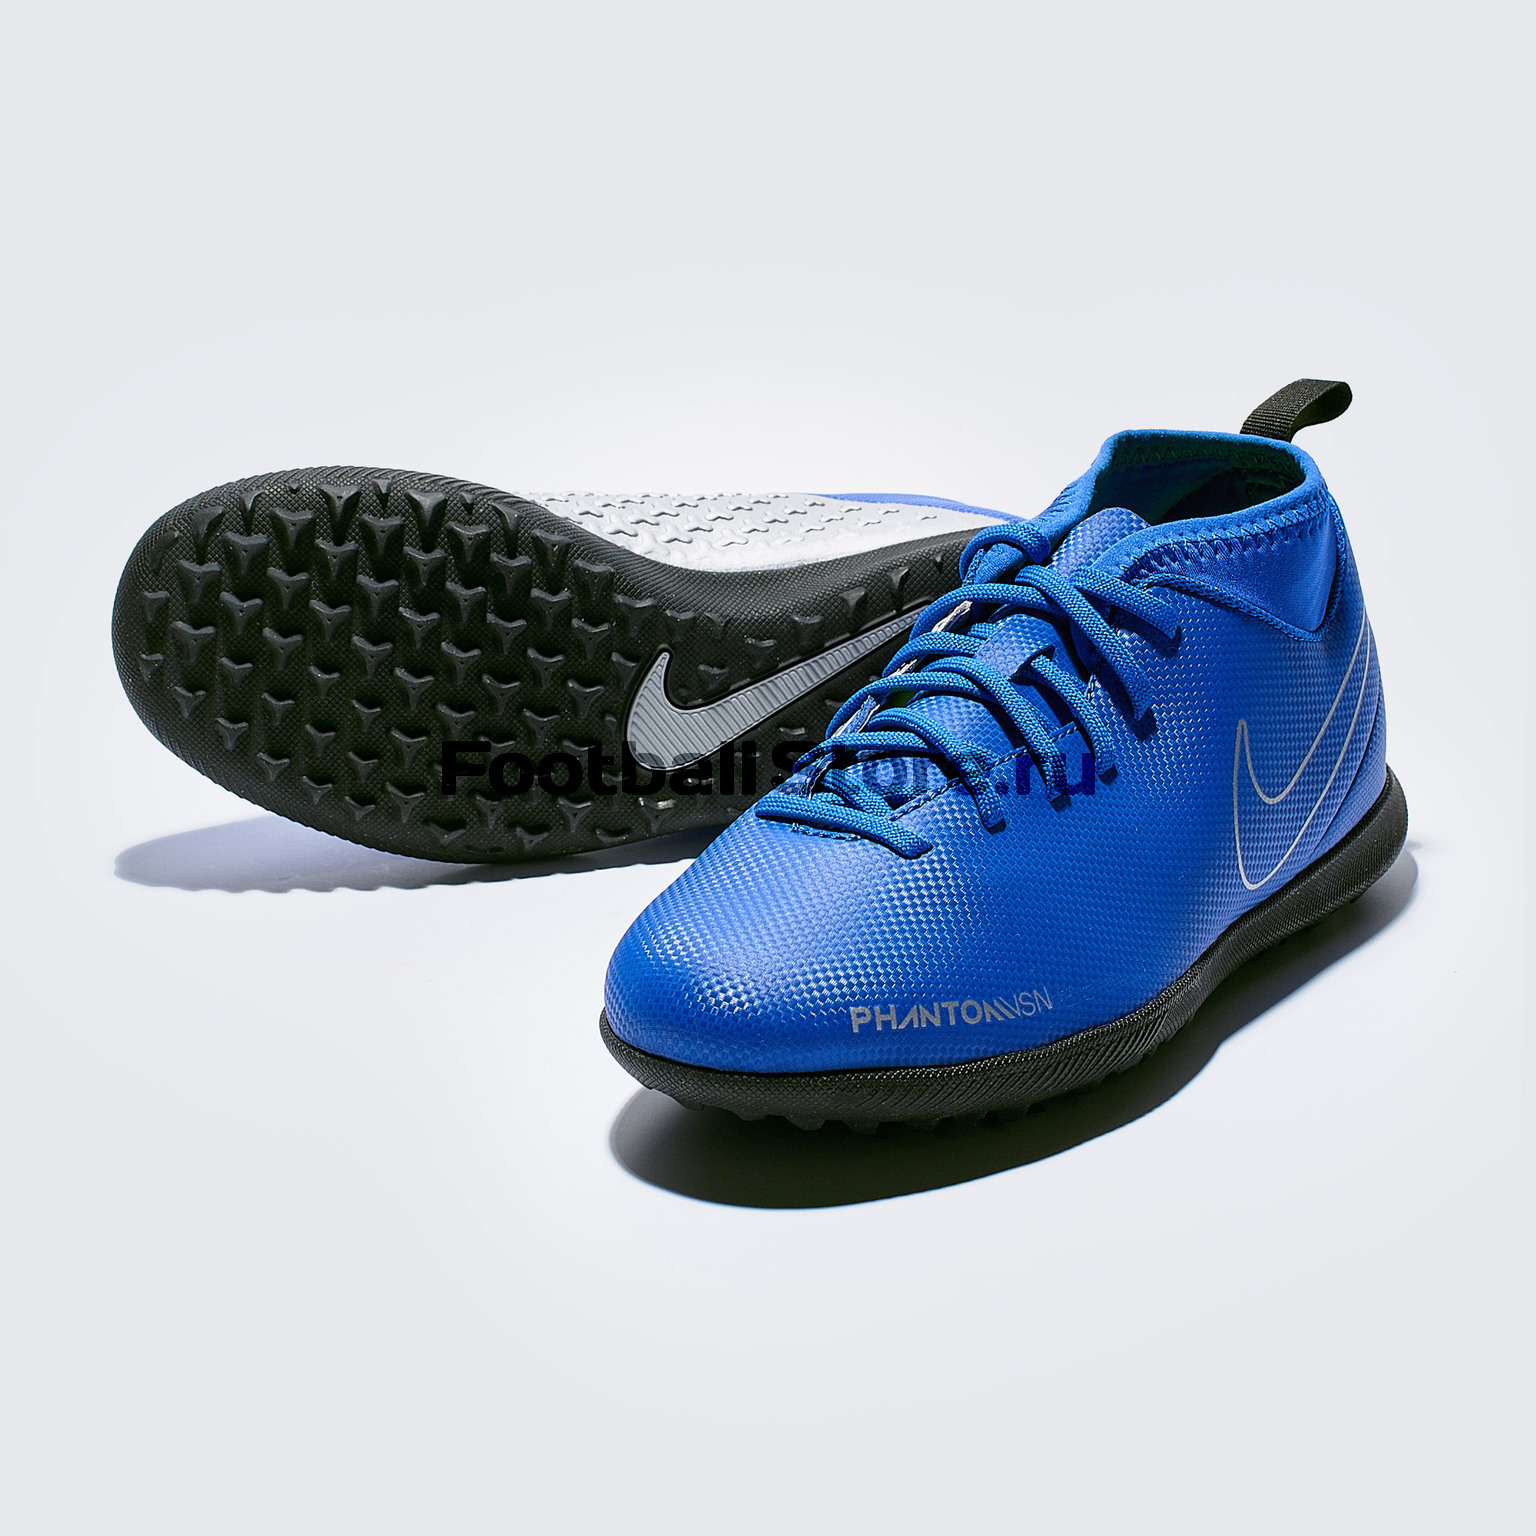 Шиповки детские Nike Phantom Vision Club DF TF AO3294-400 бутсы nike шиповки nike jr tiempox legend vi tf 819191 018